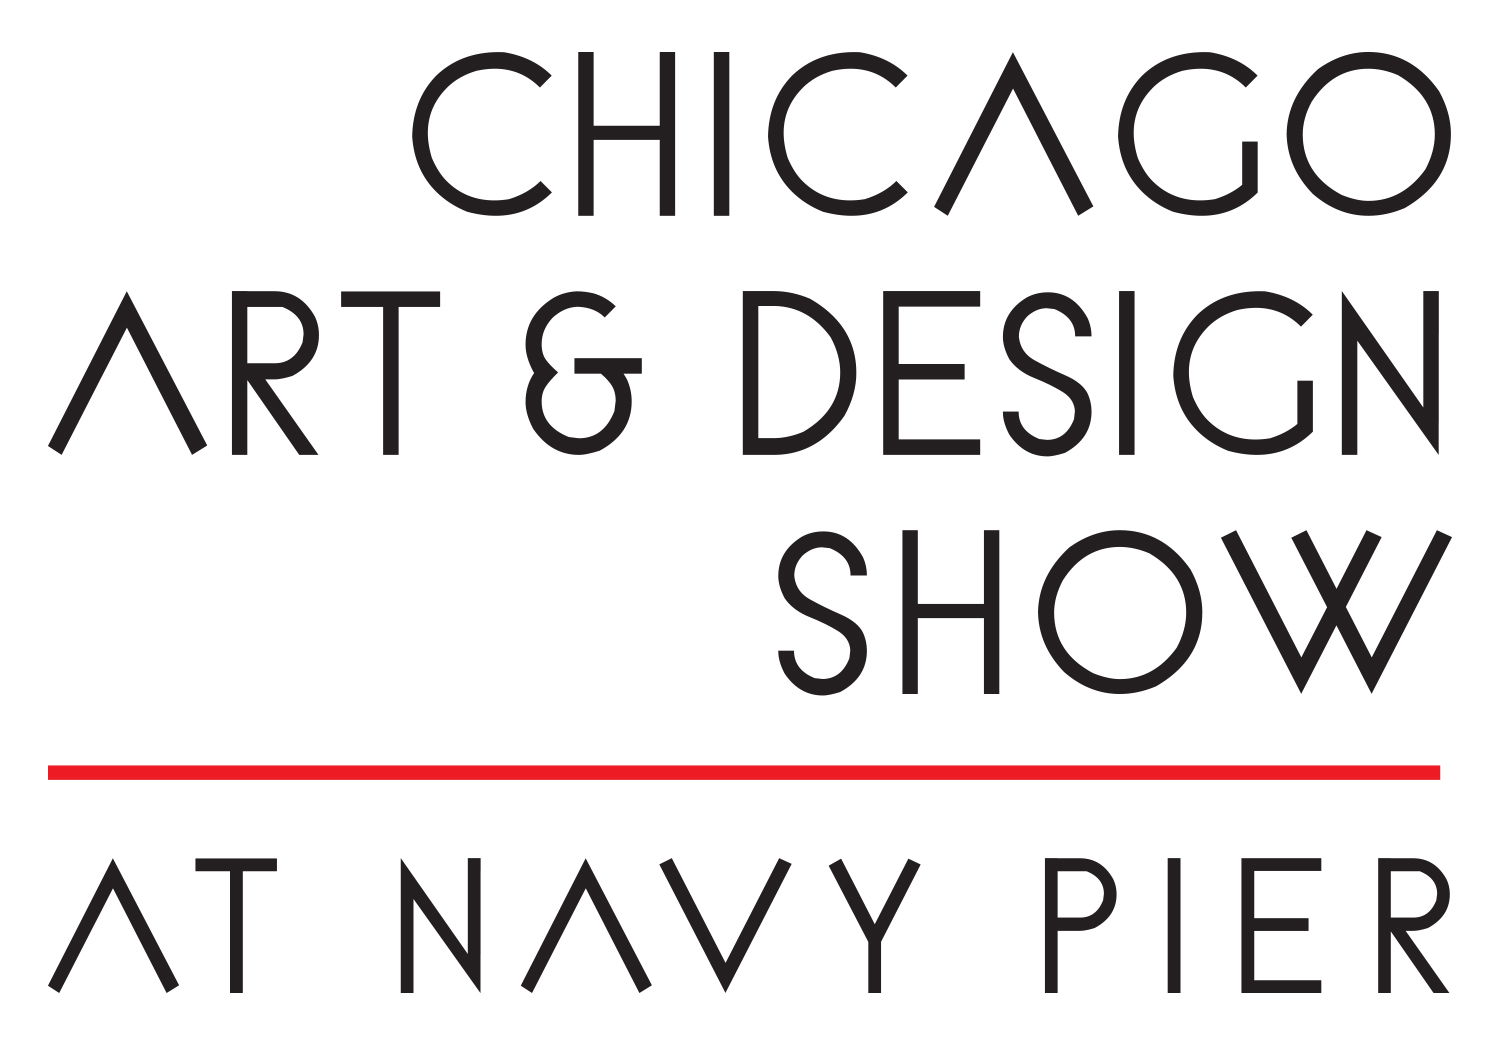 The 2017 Chicago Art & Design Show at Navy Pier